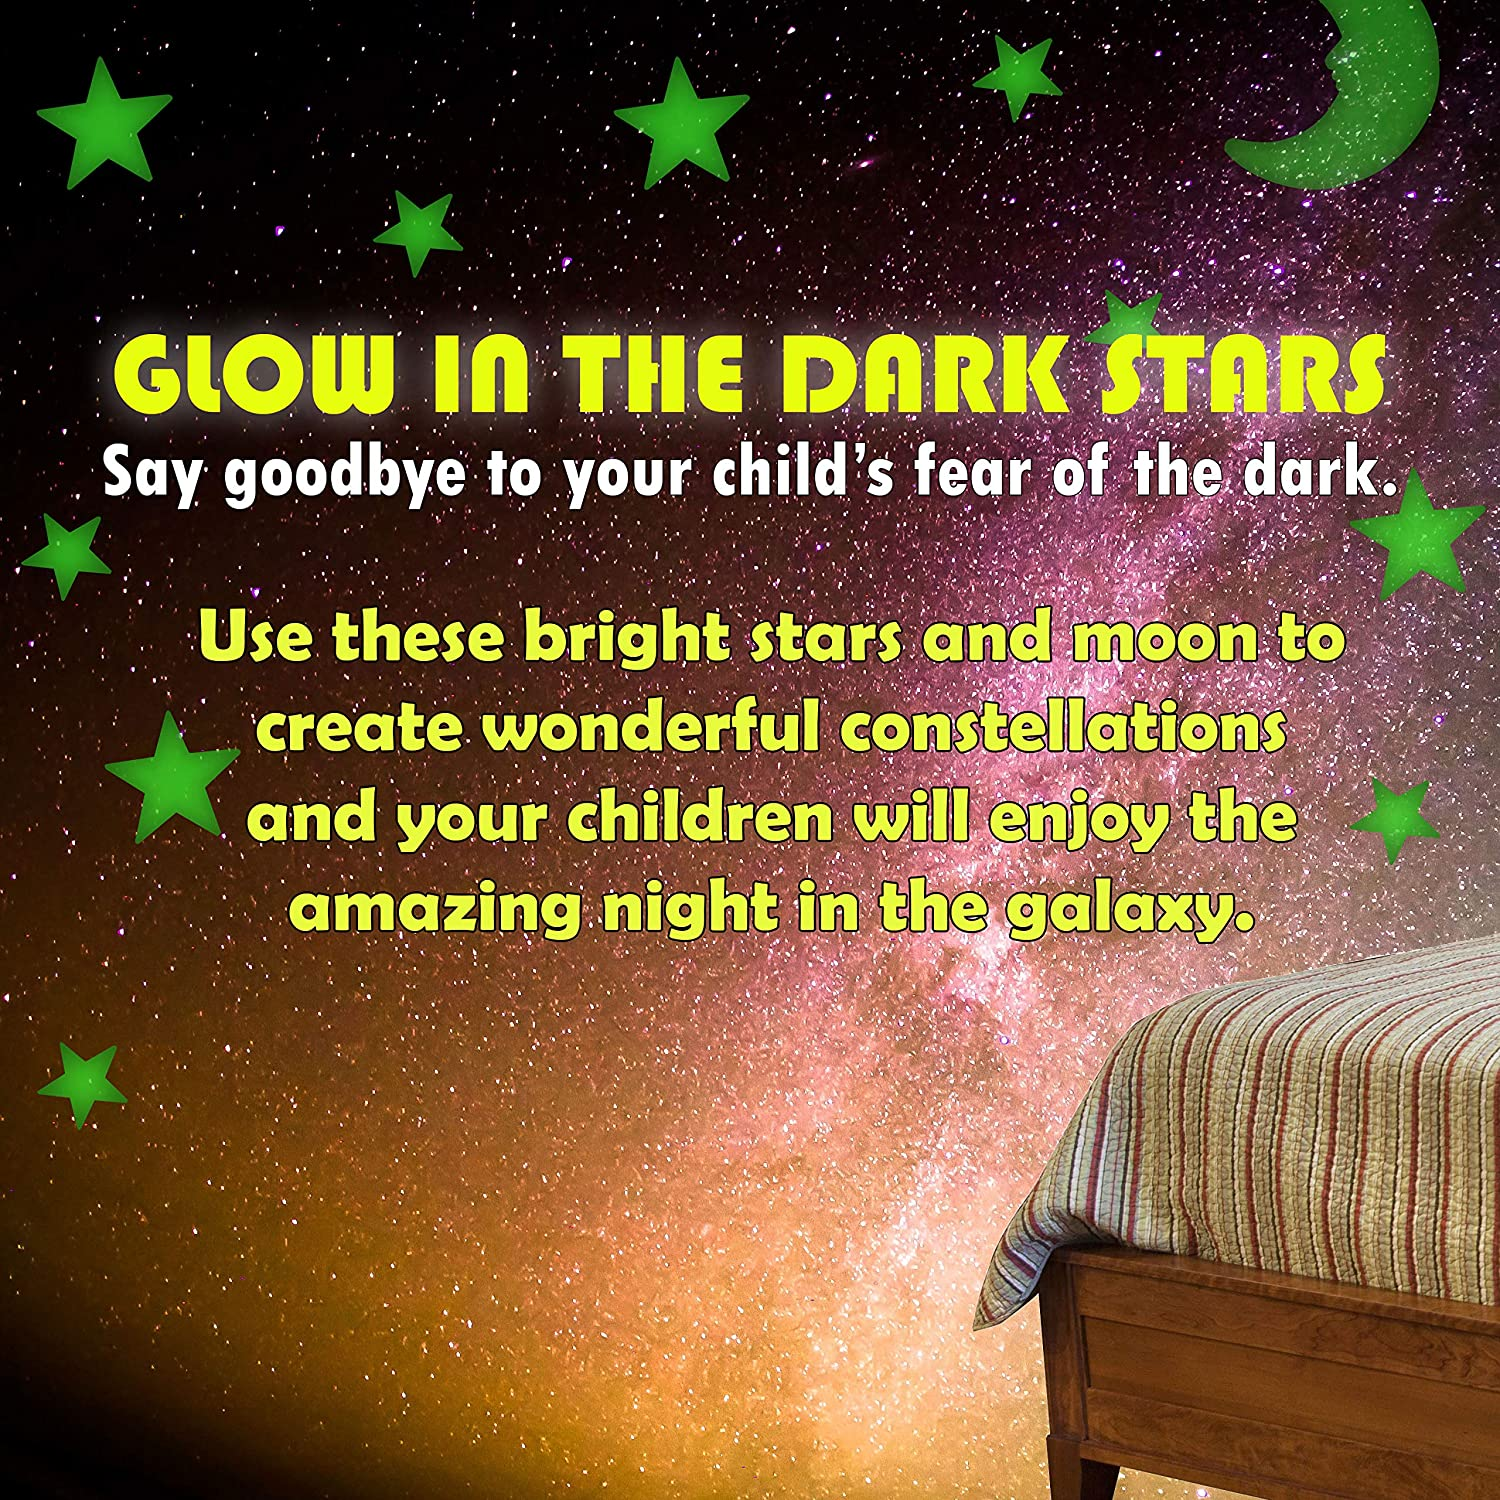 Ultra Glow in The Dark Stars Luminous Premium Quality Different Sizes Fluorescent Stars with Bonus Large Moon 201 Pcs Stickers Ceiling Decor Perfect Gift for Kids Bedroom Birthday Party